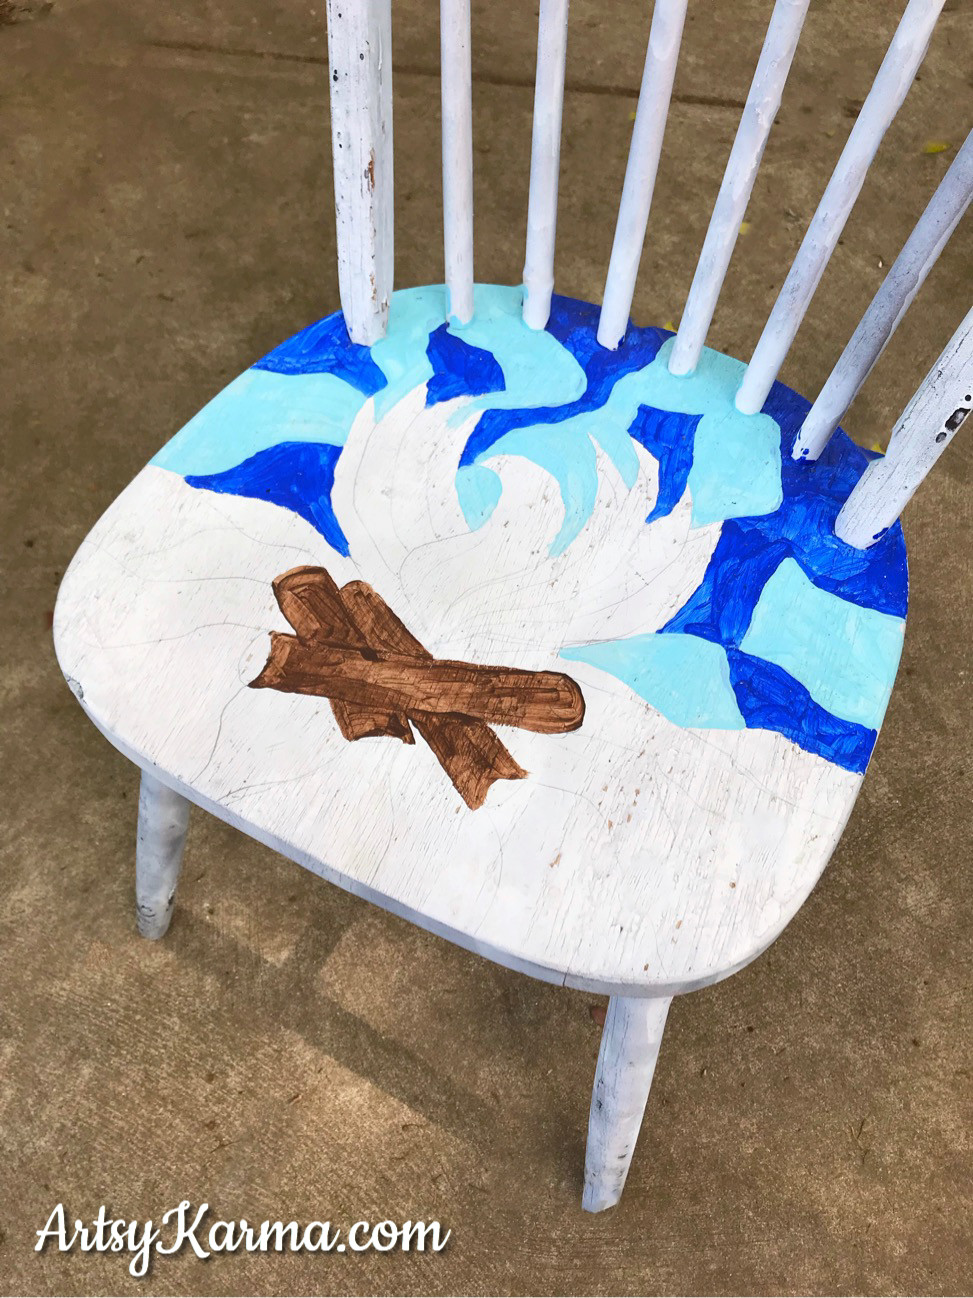 paint camp fire design on chair